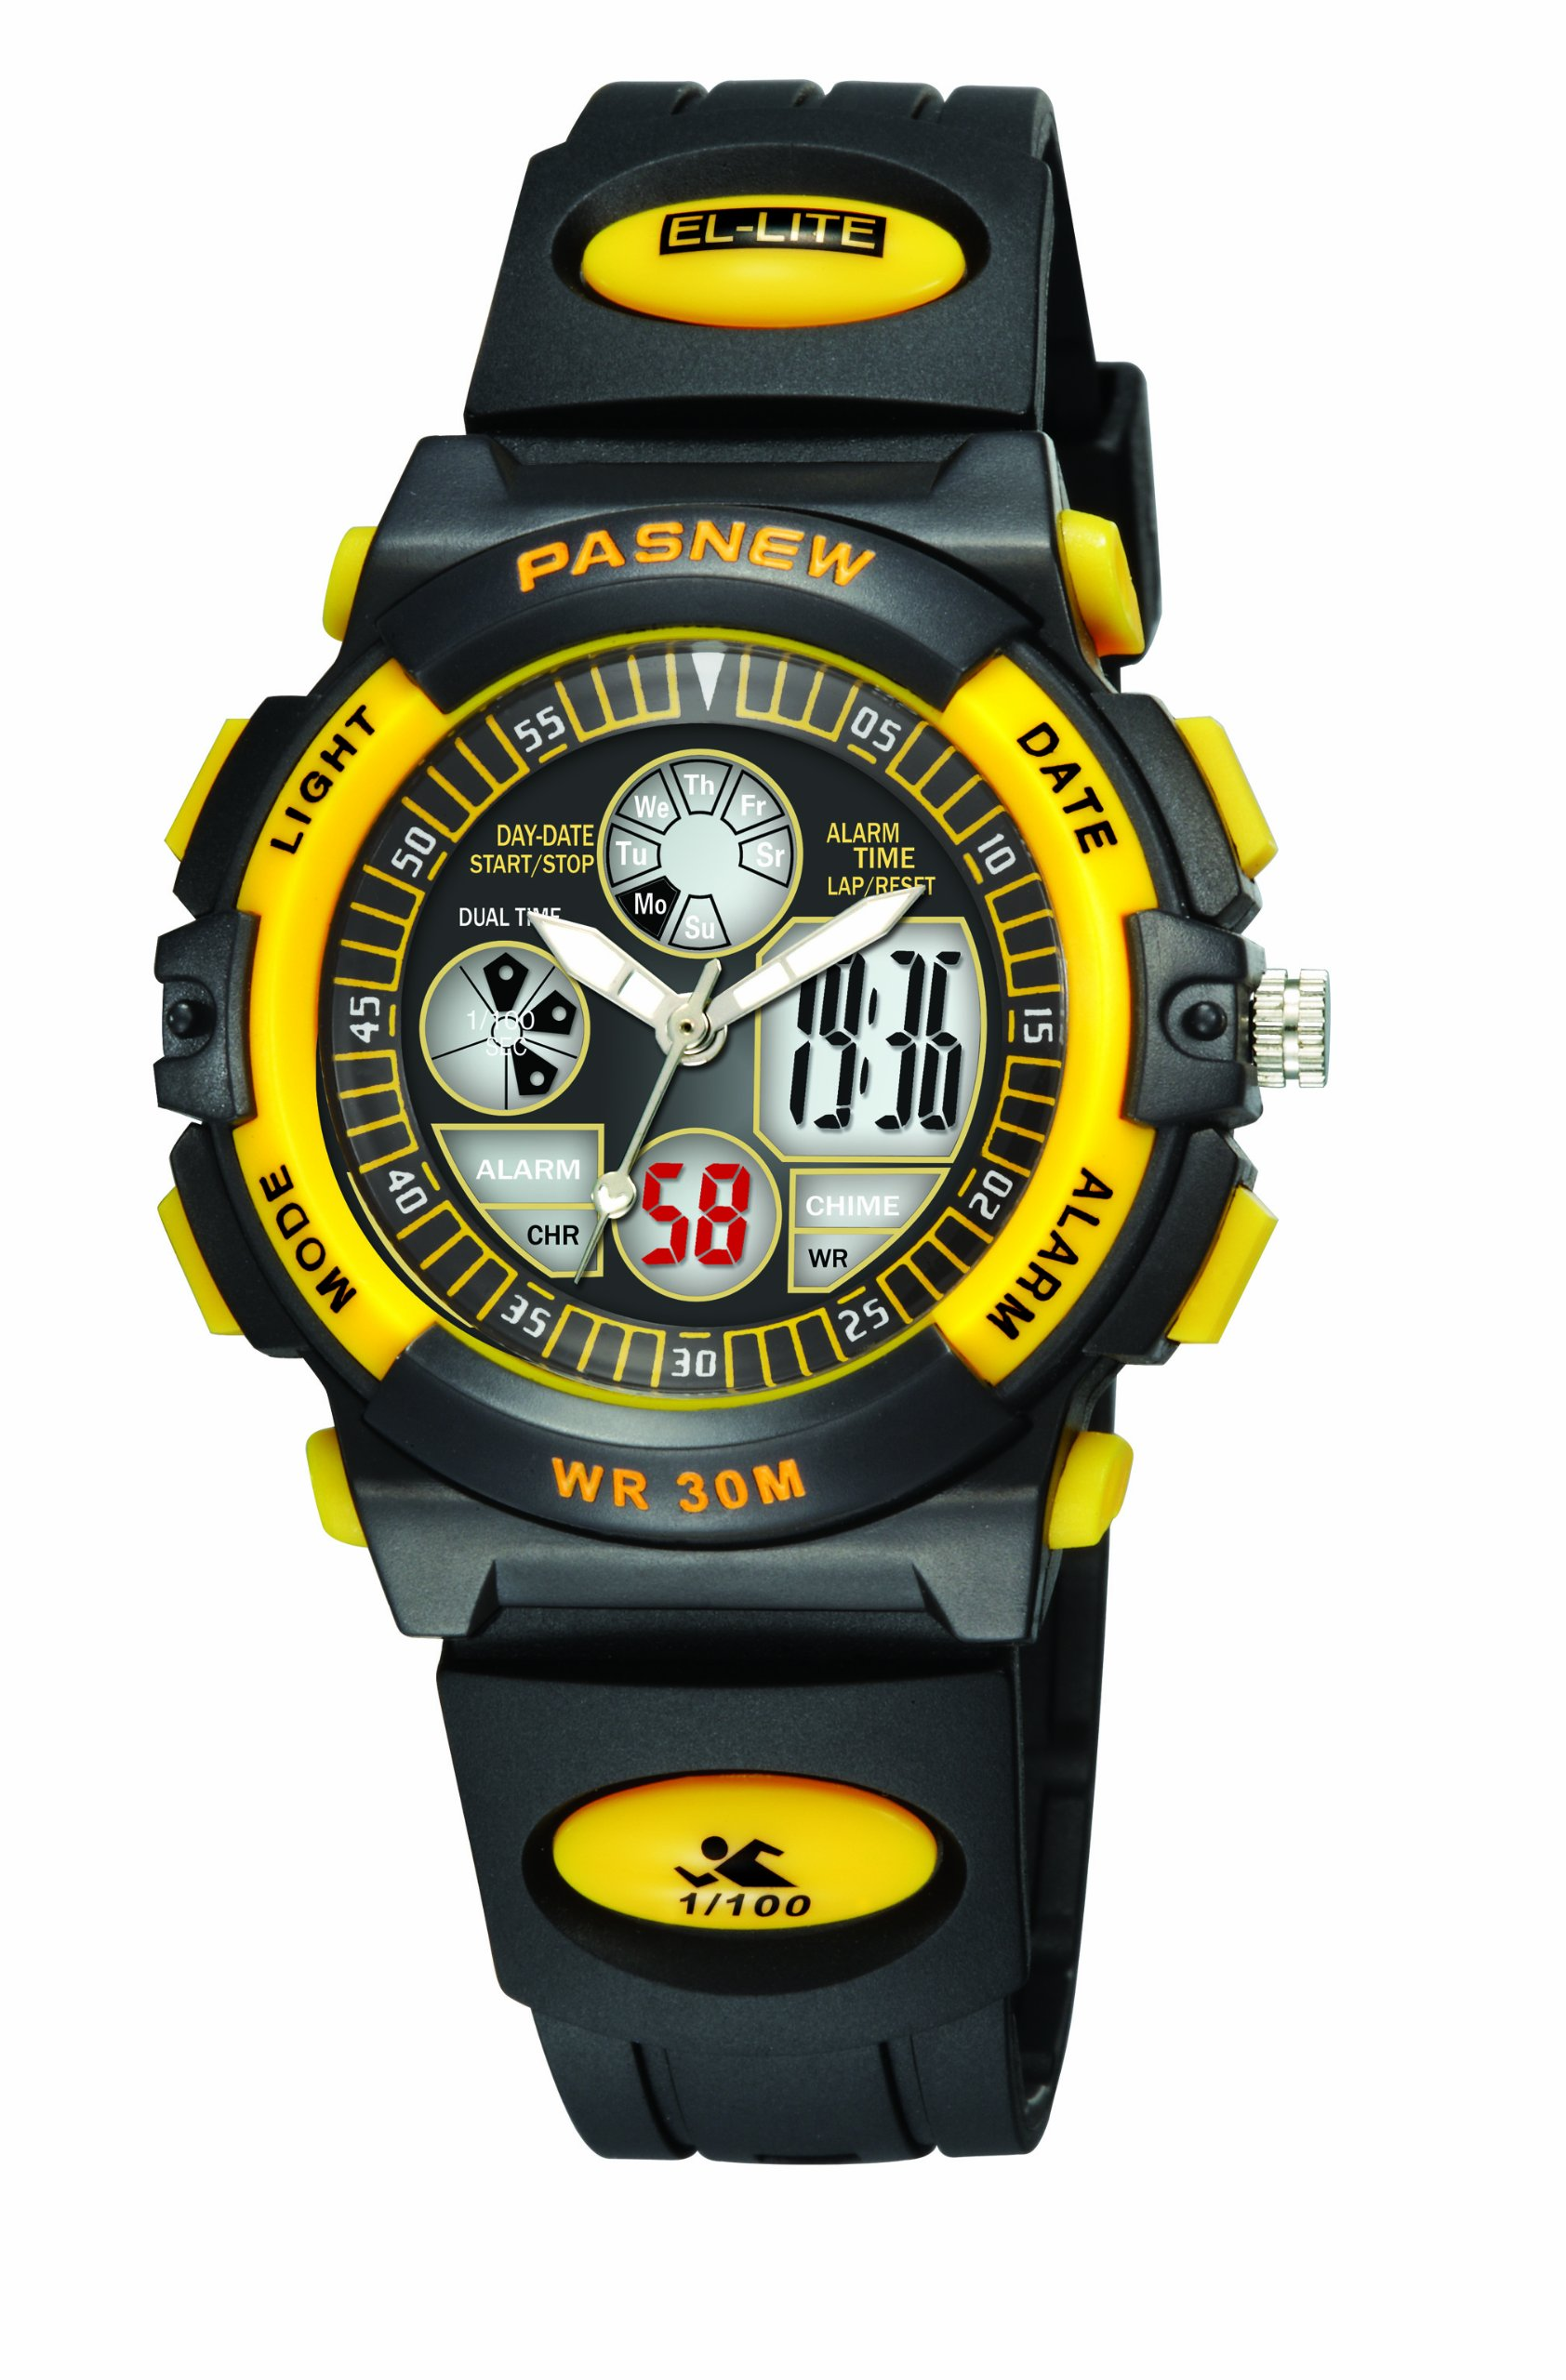 30m Water-proof Digital-analog Boys Girls Sport Digital Watch with Alarm Stopwatch Chronograph (Child) 6 Colors (Yellow-black) by PASNEW